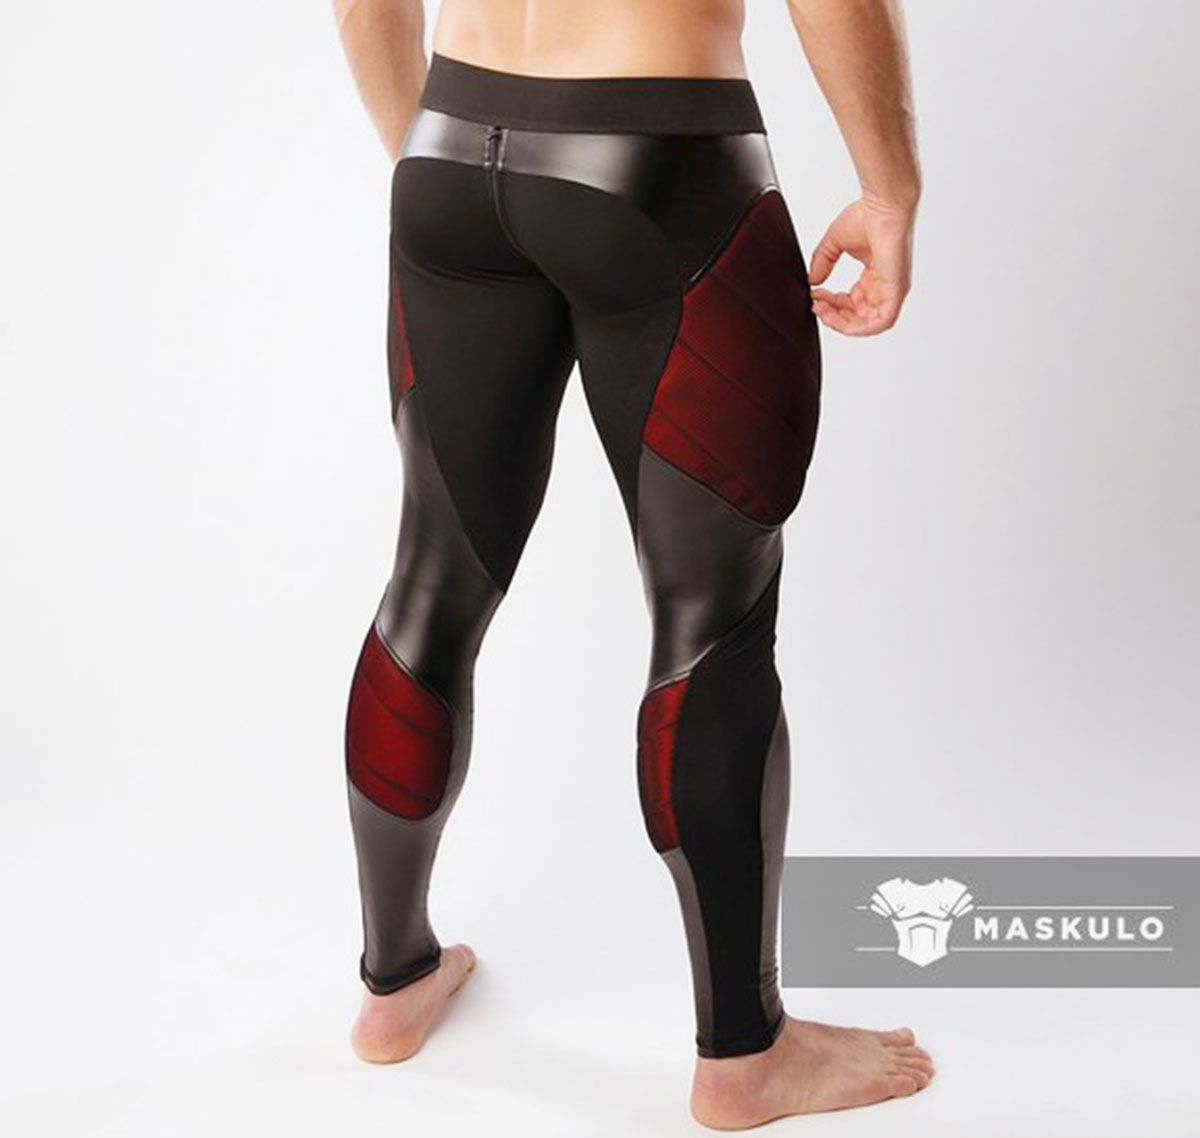 MASKULO Leggings Fetiche ARMORED. COLOR-UNDER. LG062, negro/rojo